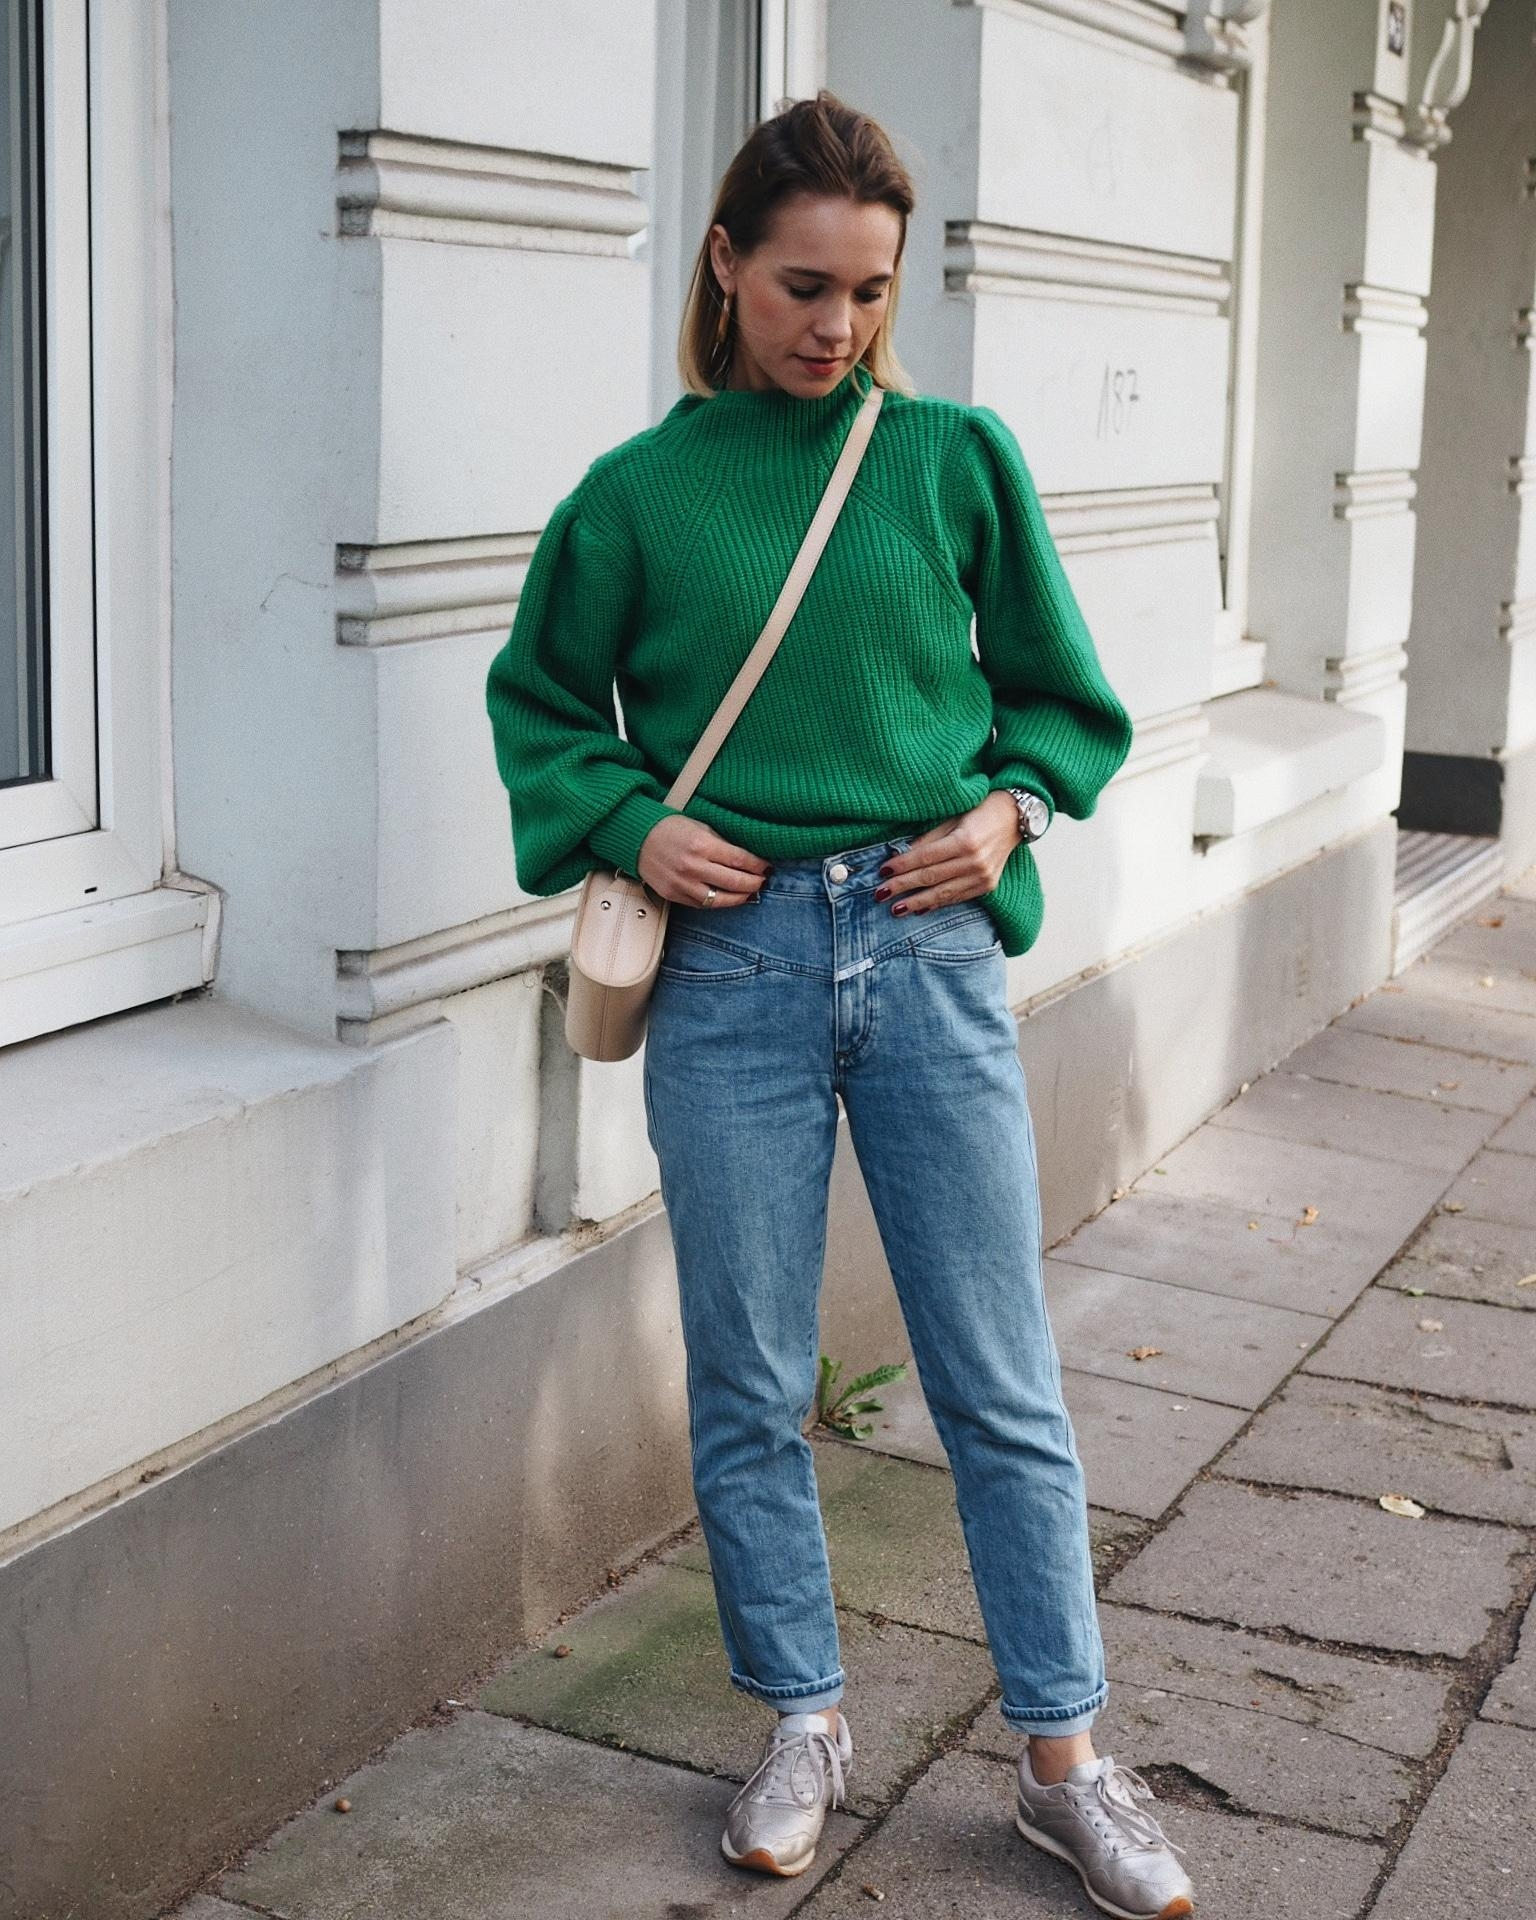 Green crush ✔️ #ootd #fashion #streetfashion #streetstyle #outfit #fashioncrush